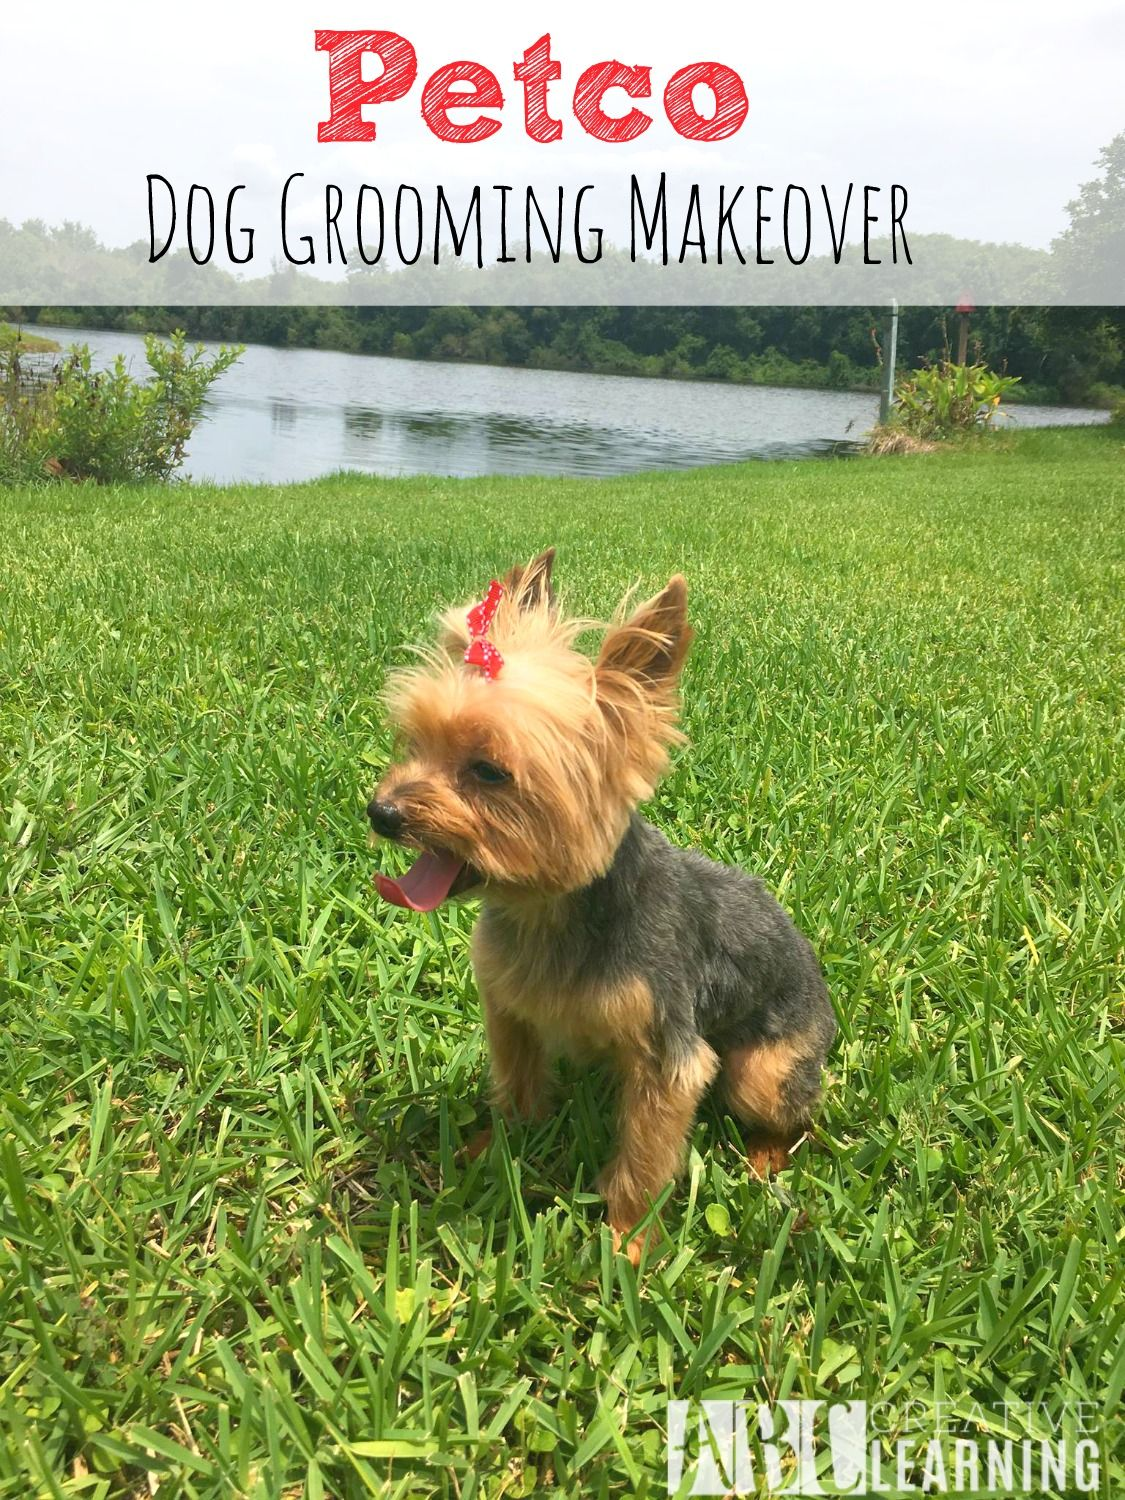 Petco Dog Grooming Makeover Petco Dog Dog Grooming Dogs